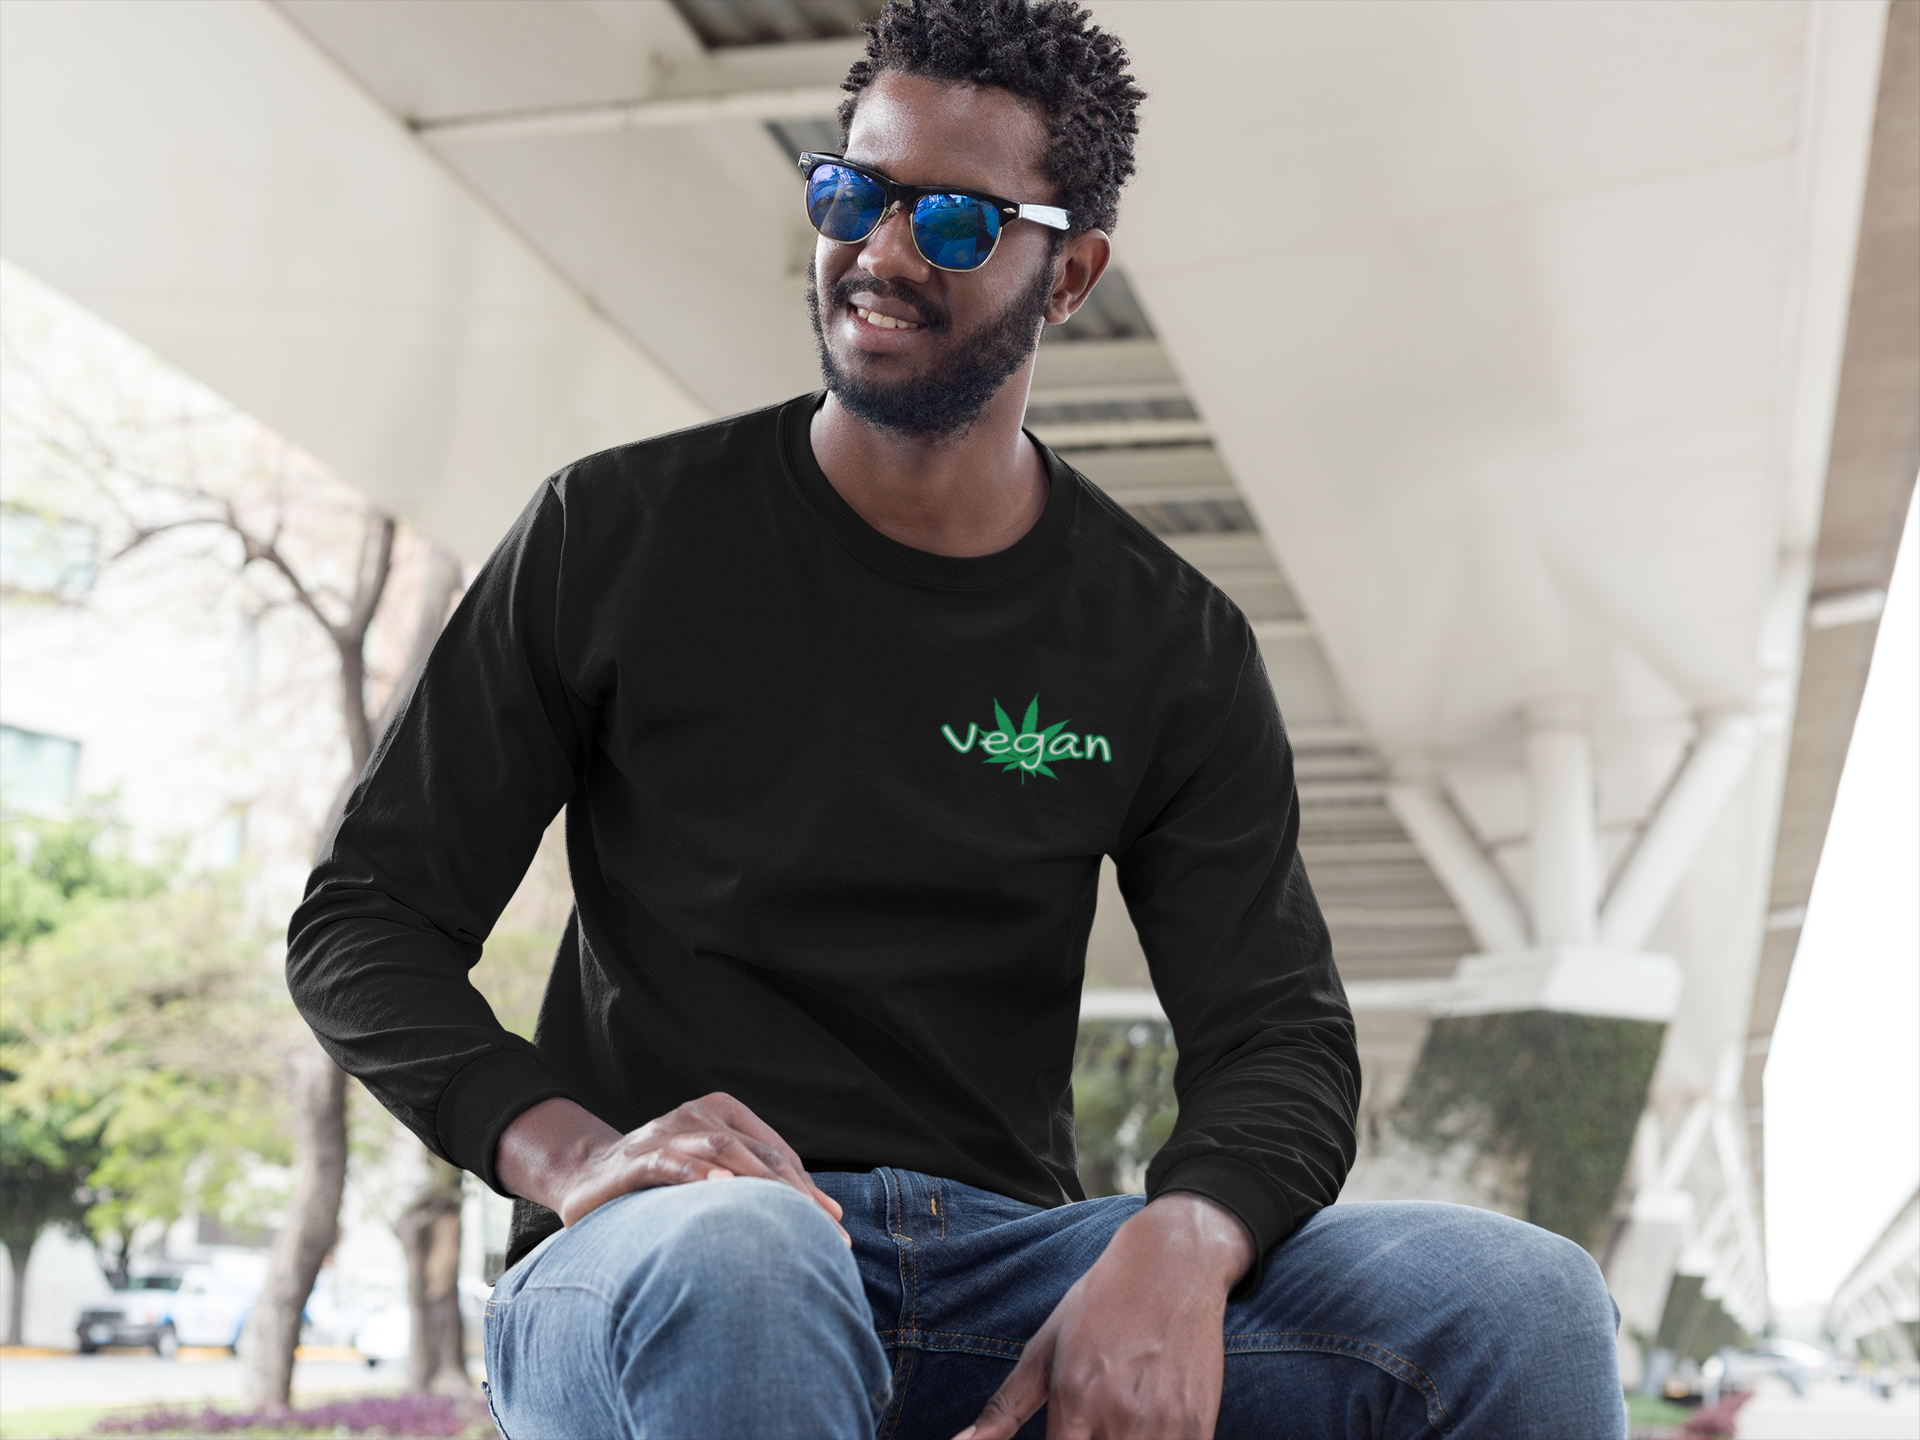 Men's Long Sleeve Vegan black 420